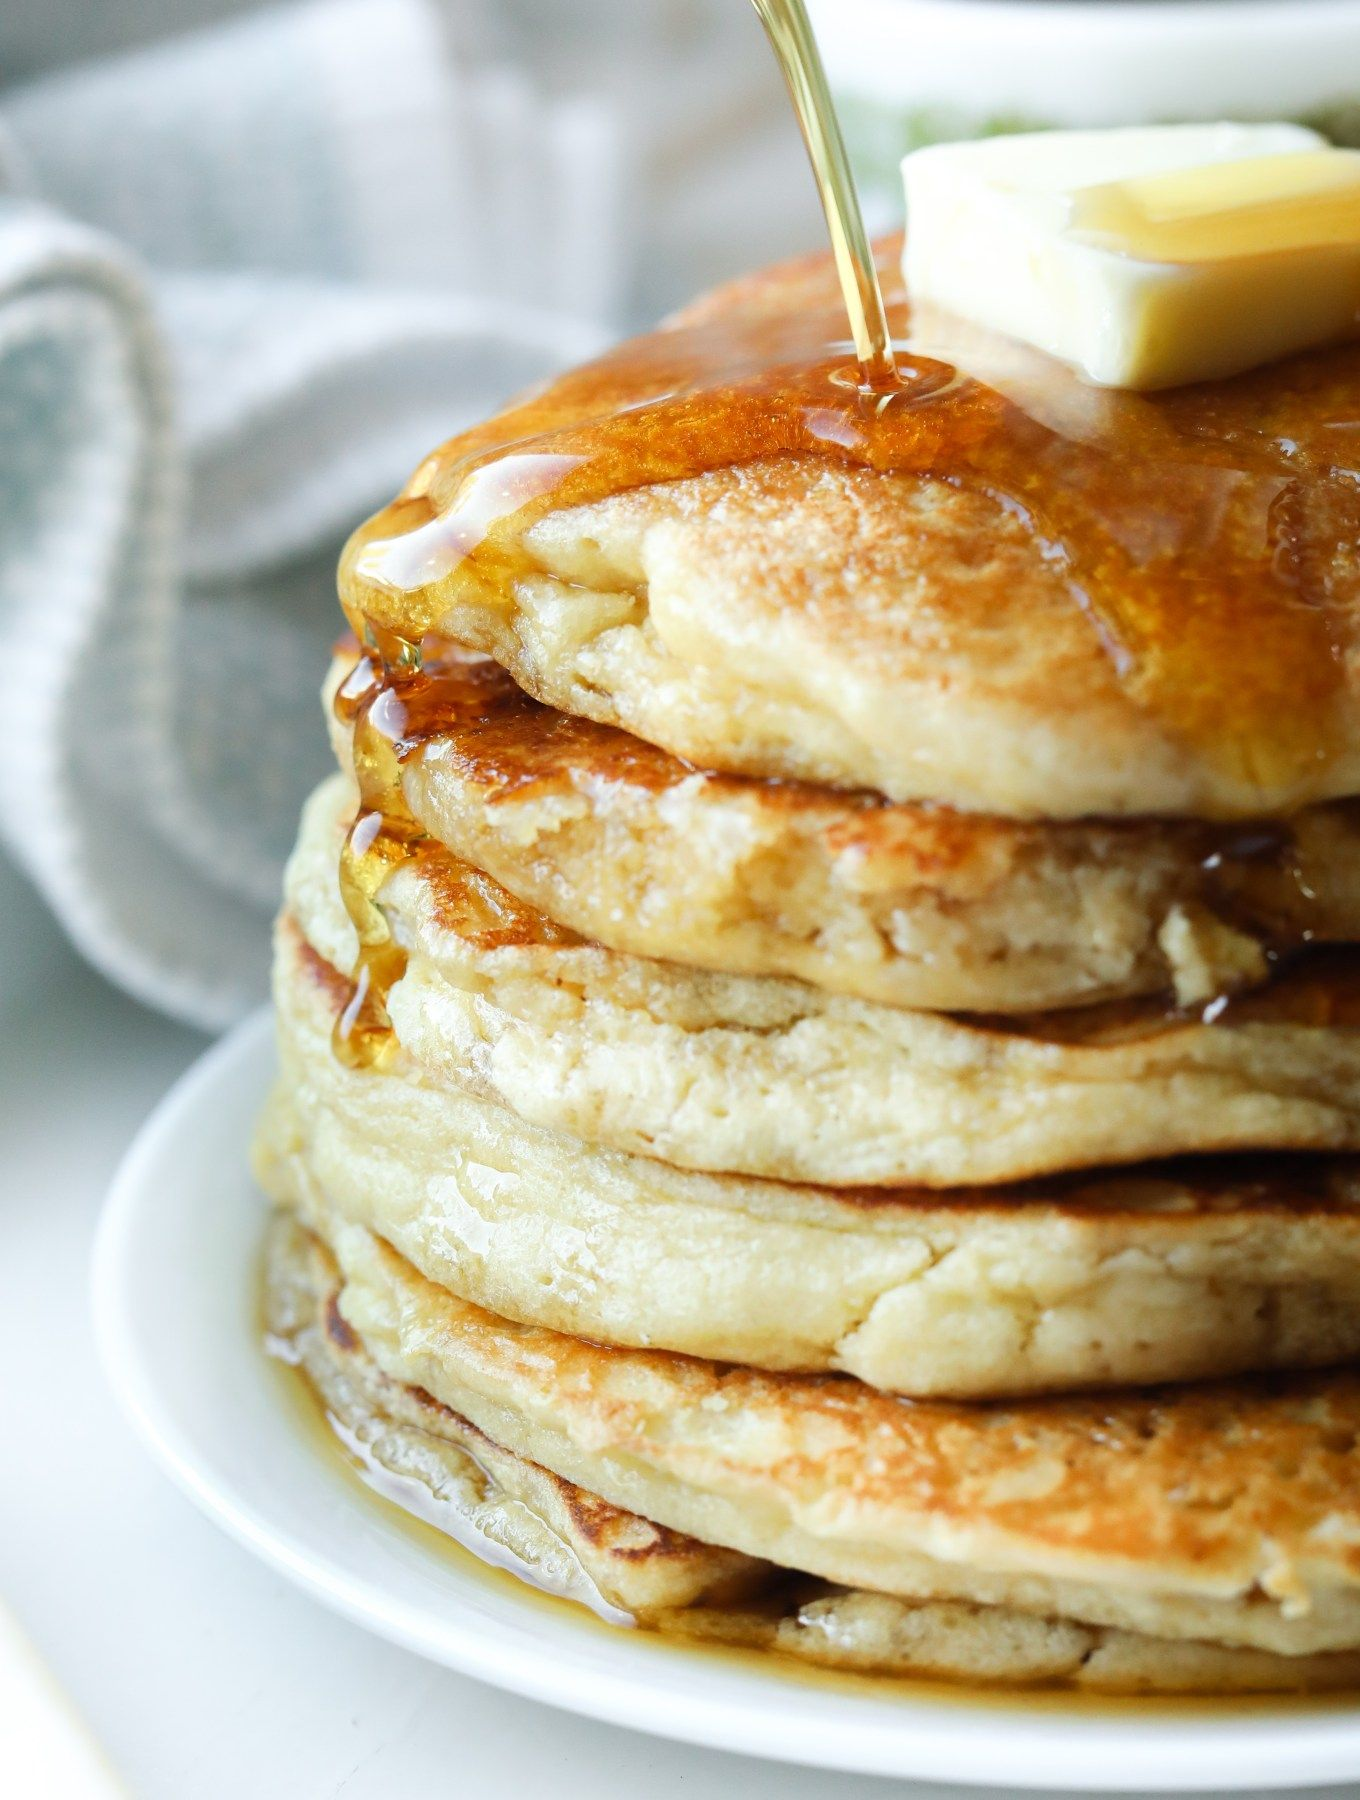 Keto Pancakes Made In 1 Minute The Best Low Carb Fluffy And